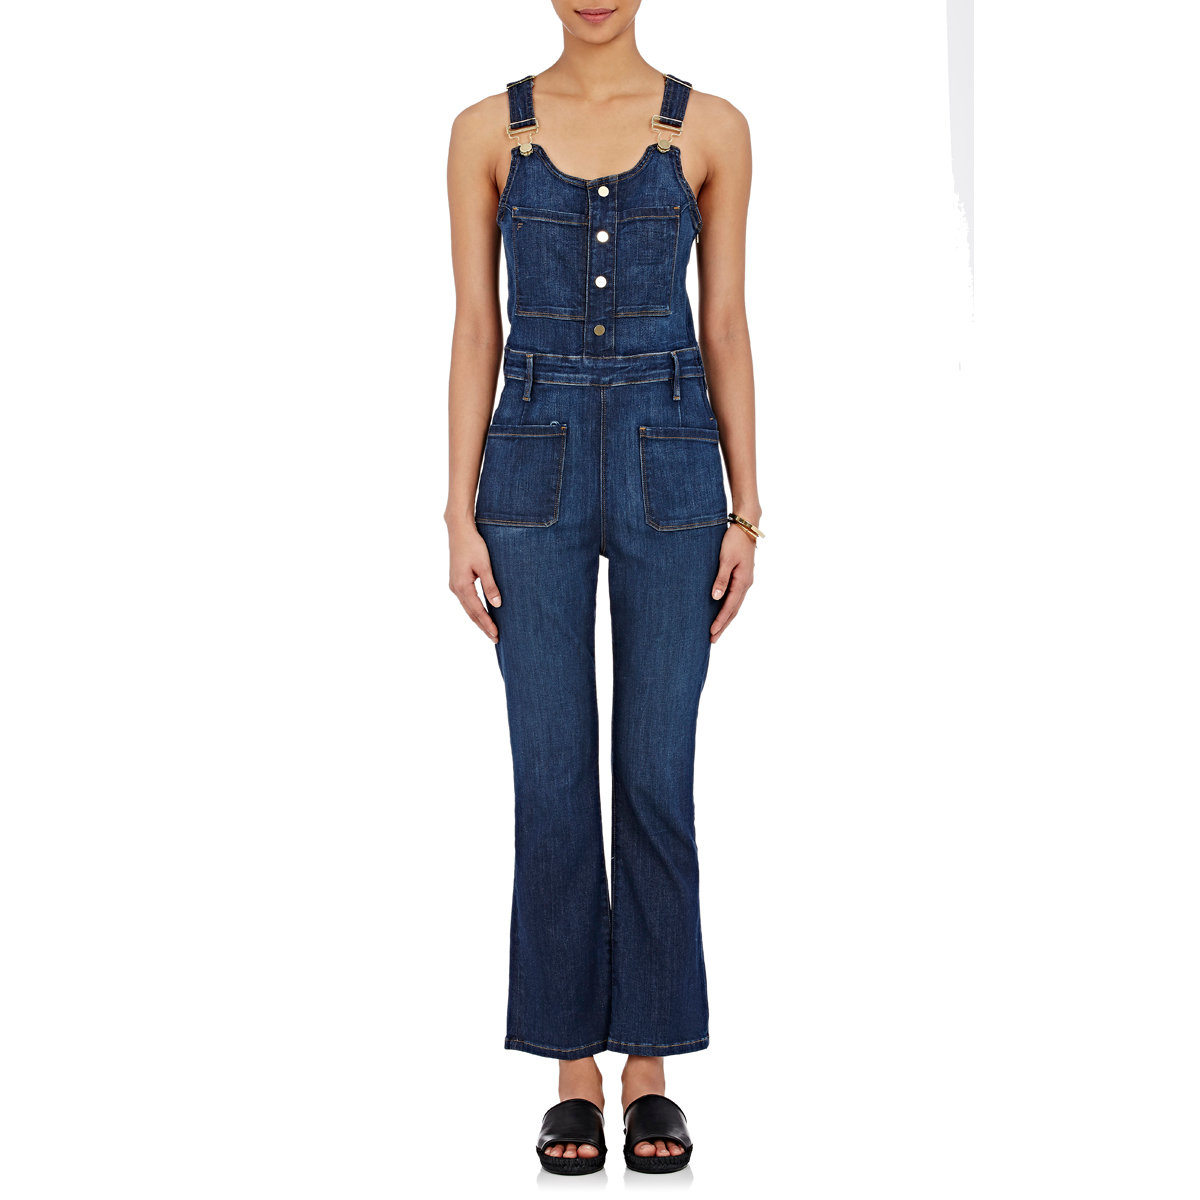 Lyst - Frame Women\'s Le High Flared Overalls in Blue